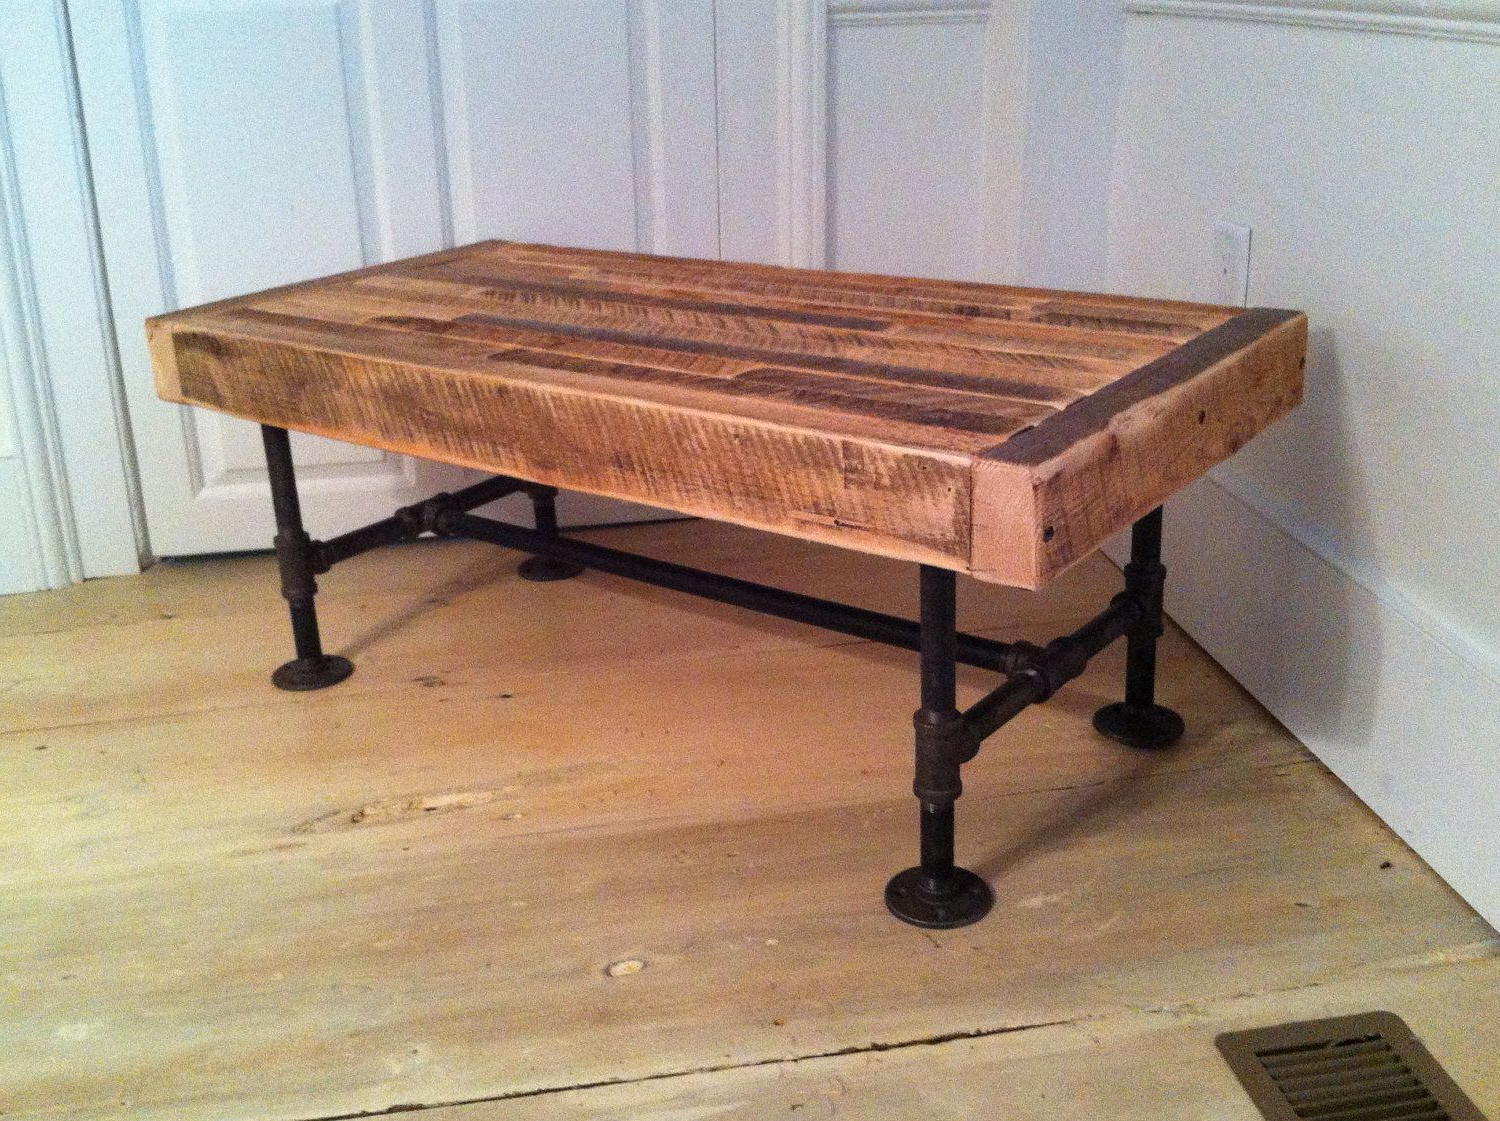 Pine Metal Tube Coffee Tables Inside 2018 Industrial Wood & Steel Coffee Table, Reclaimed Barnwood With (View 5 of 20)